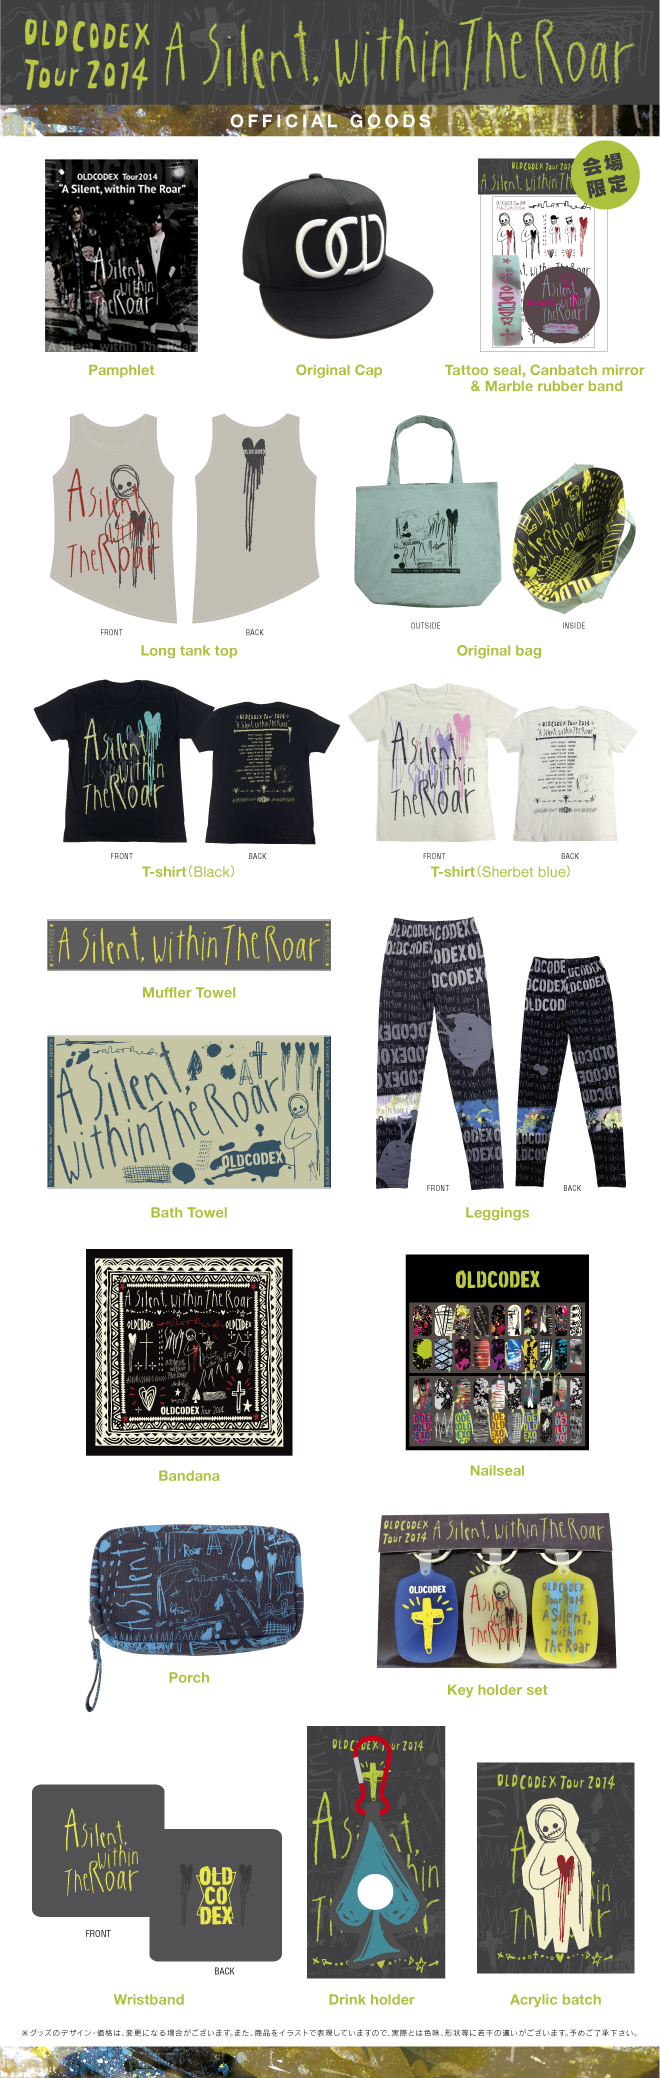 """OLDCODEX Tour 2014 """"A Silent, within The Roar"""" OFFICIAL GOODS"""